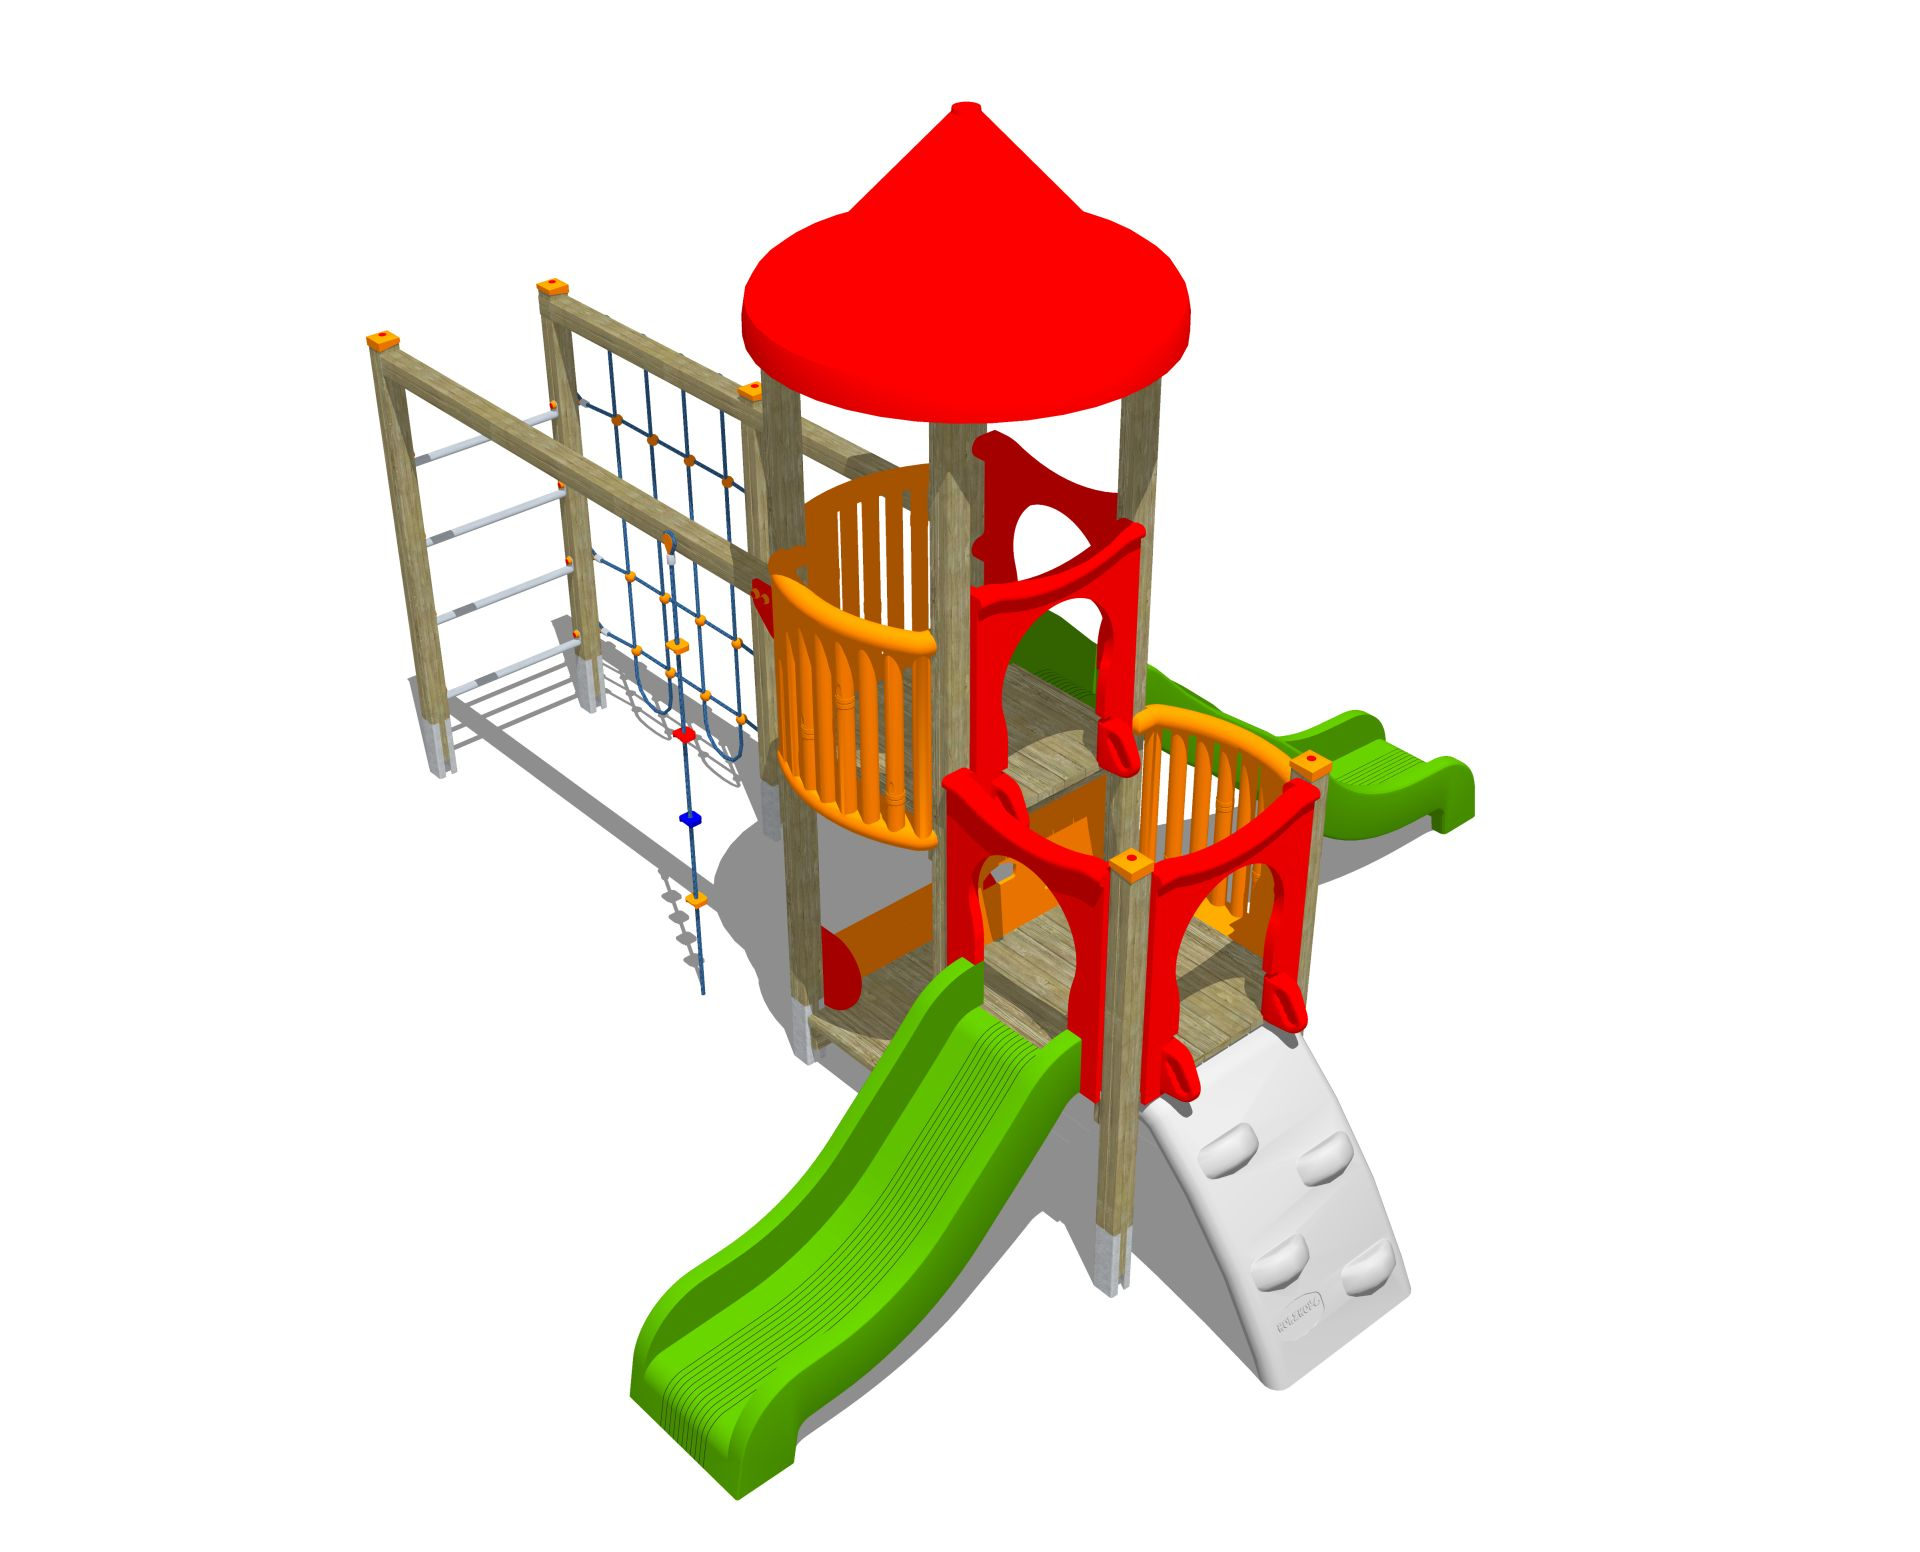 Holzhof ALADIN Aladin 2 towers with ramp h 84, slides h 84 + 144 + rope wall climber